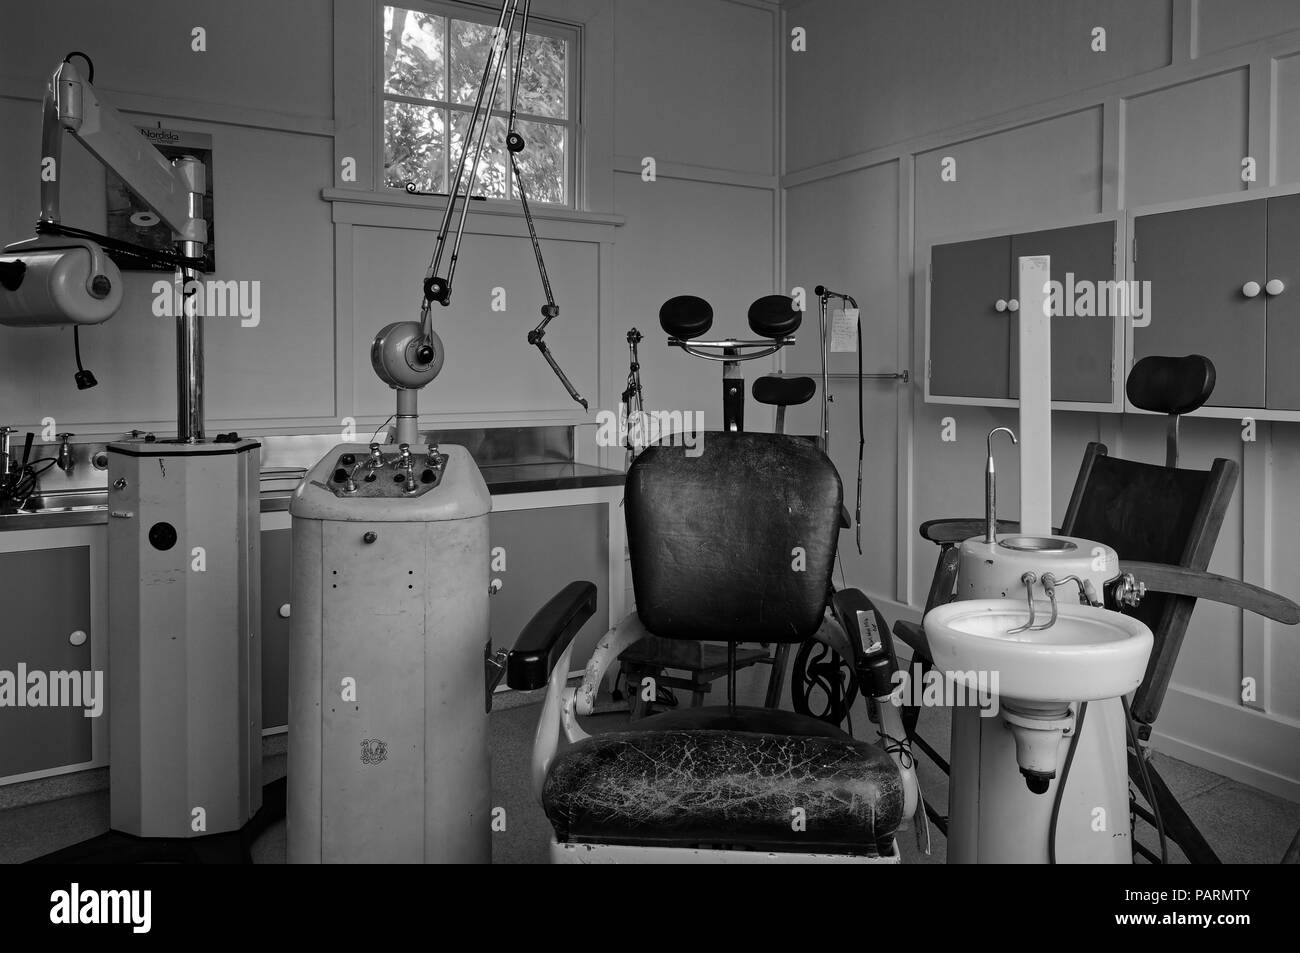 dental equipment from the last century, black and white - Stock Image